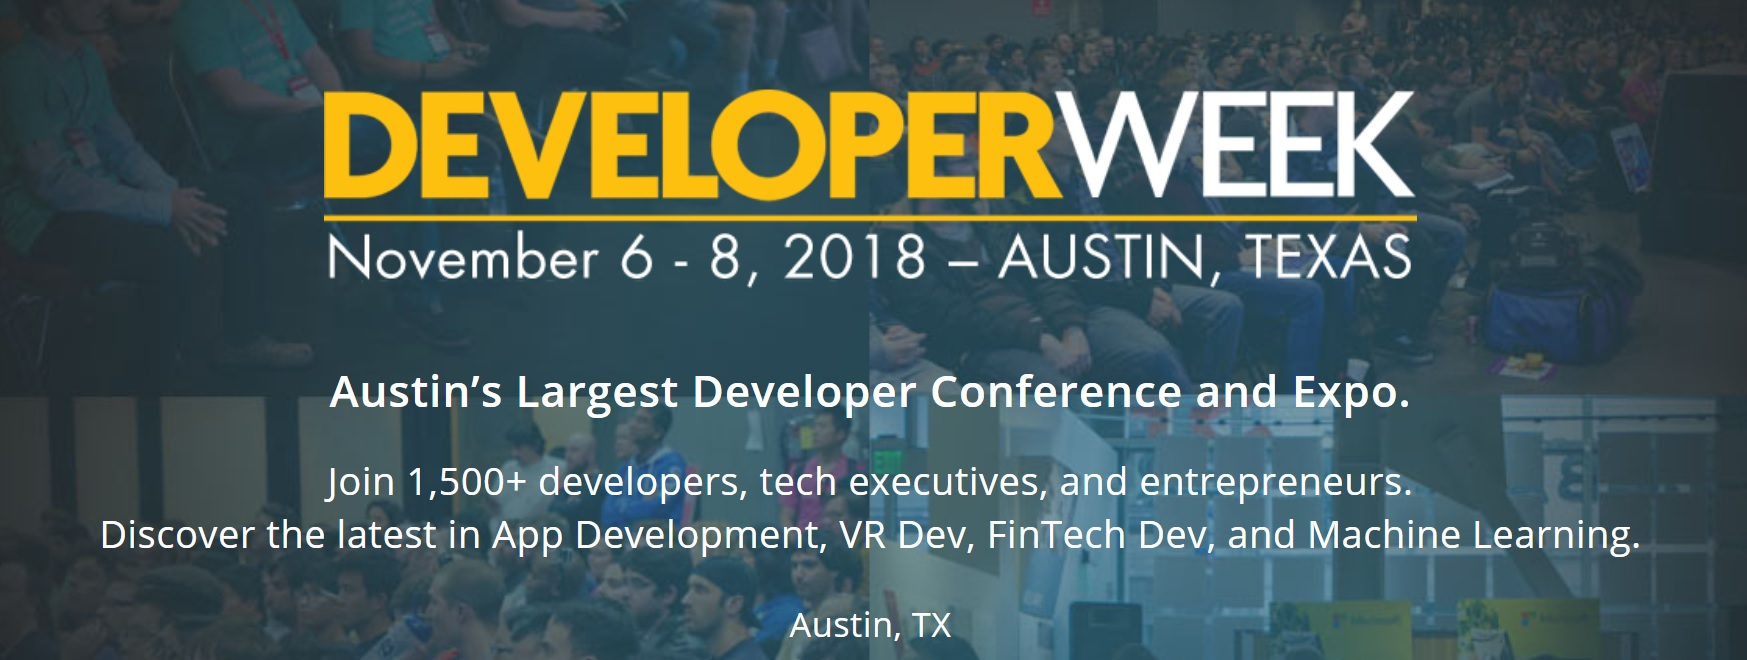 Austin Developers Week 2018